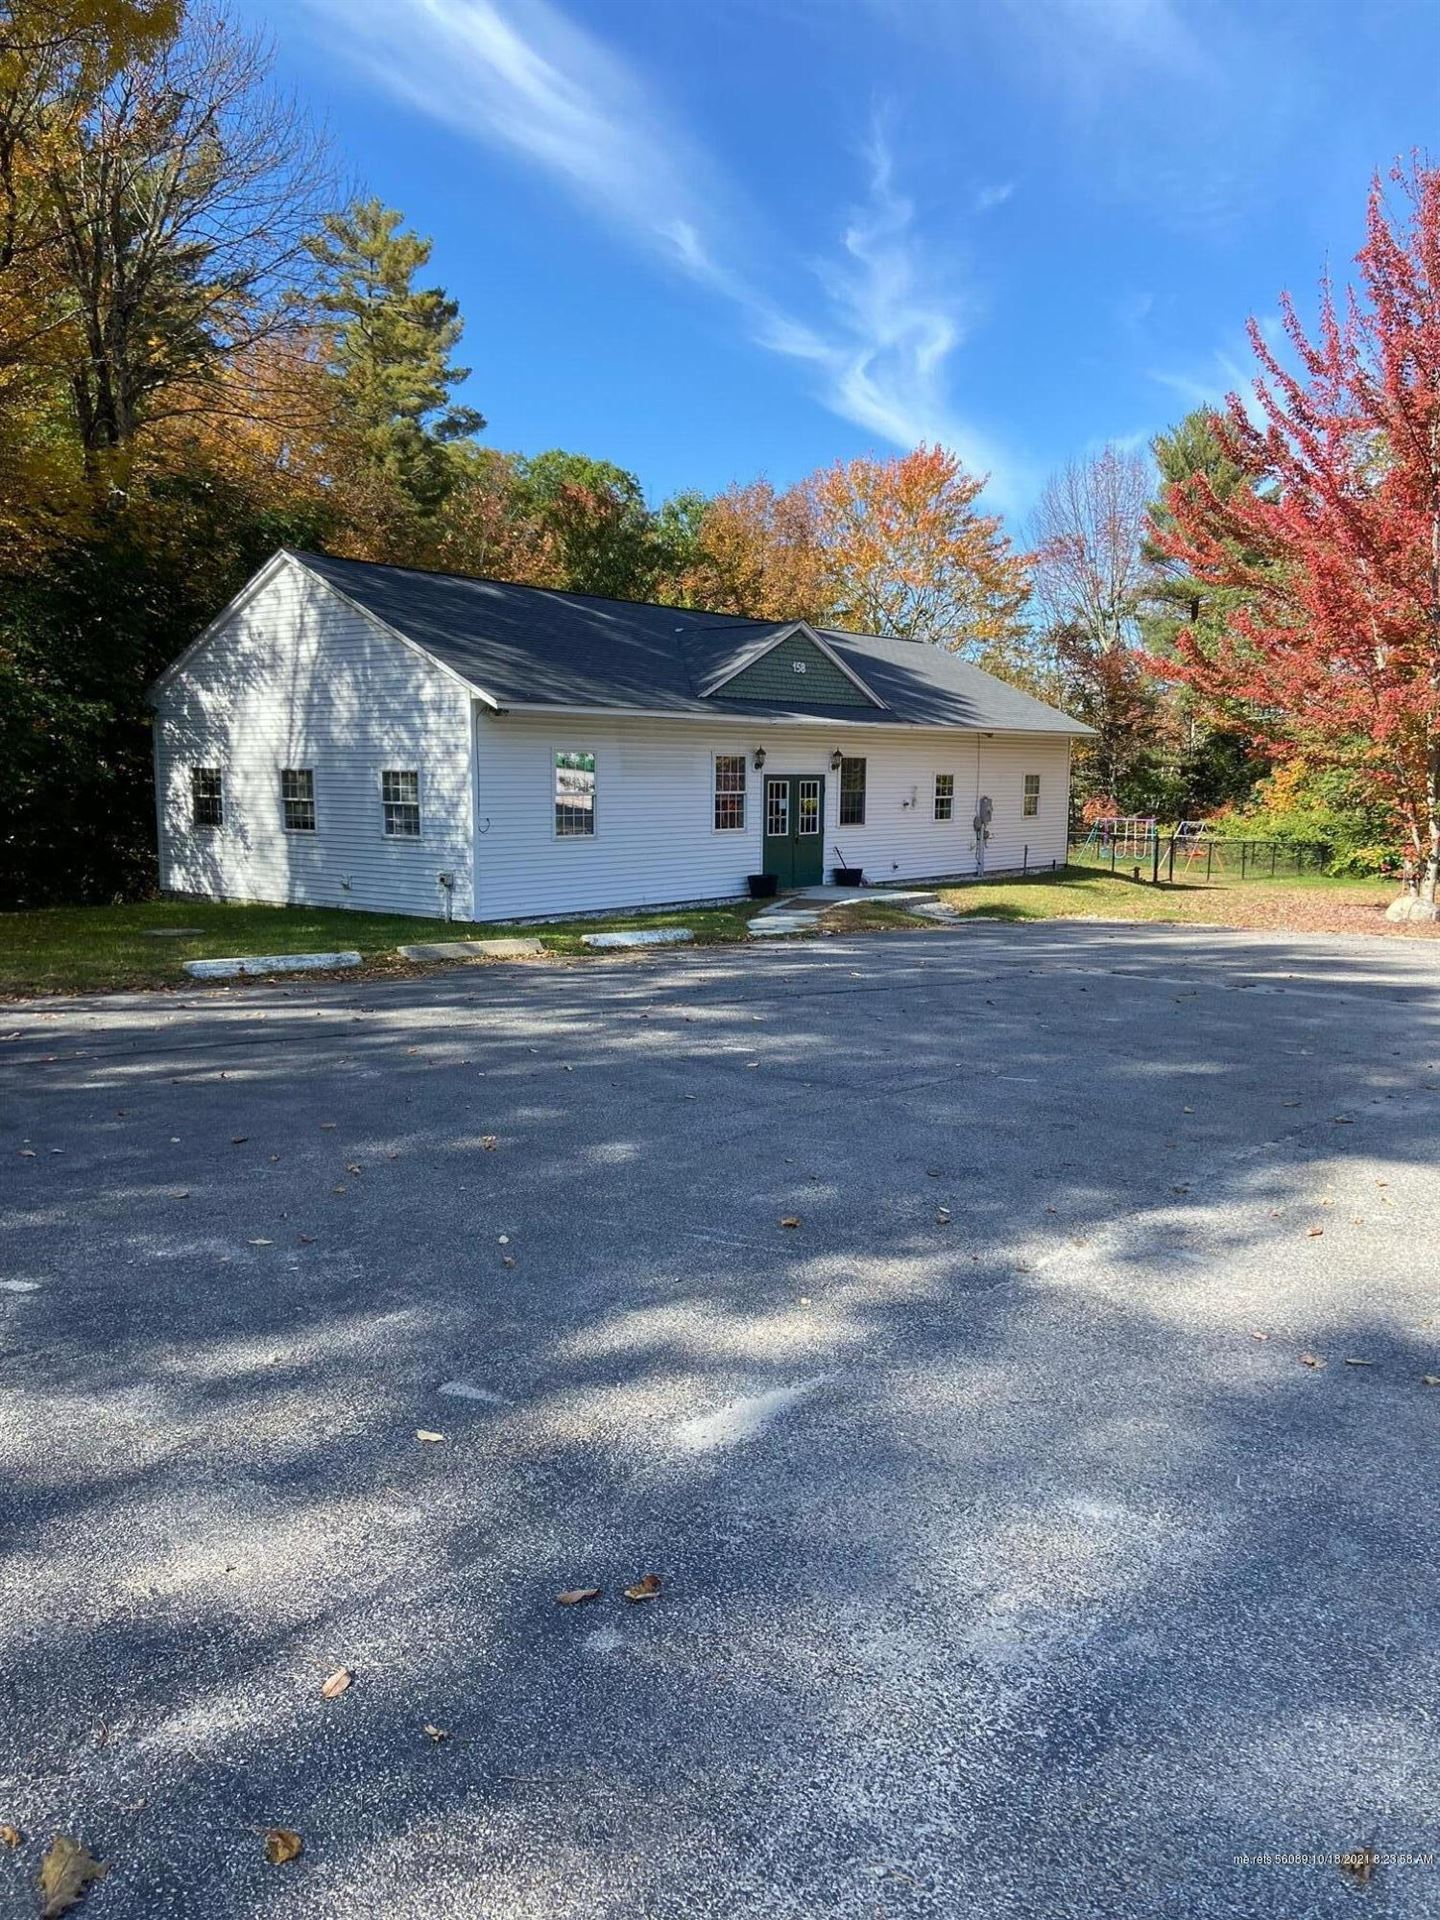 Photo of 158 Roosevelt Trail, Windham, ME 04062 (MLS # 1512213)